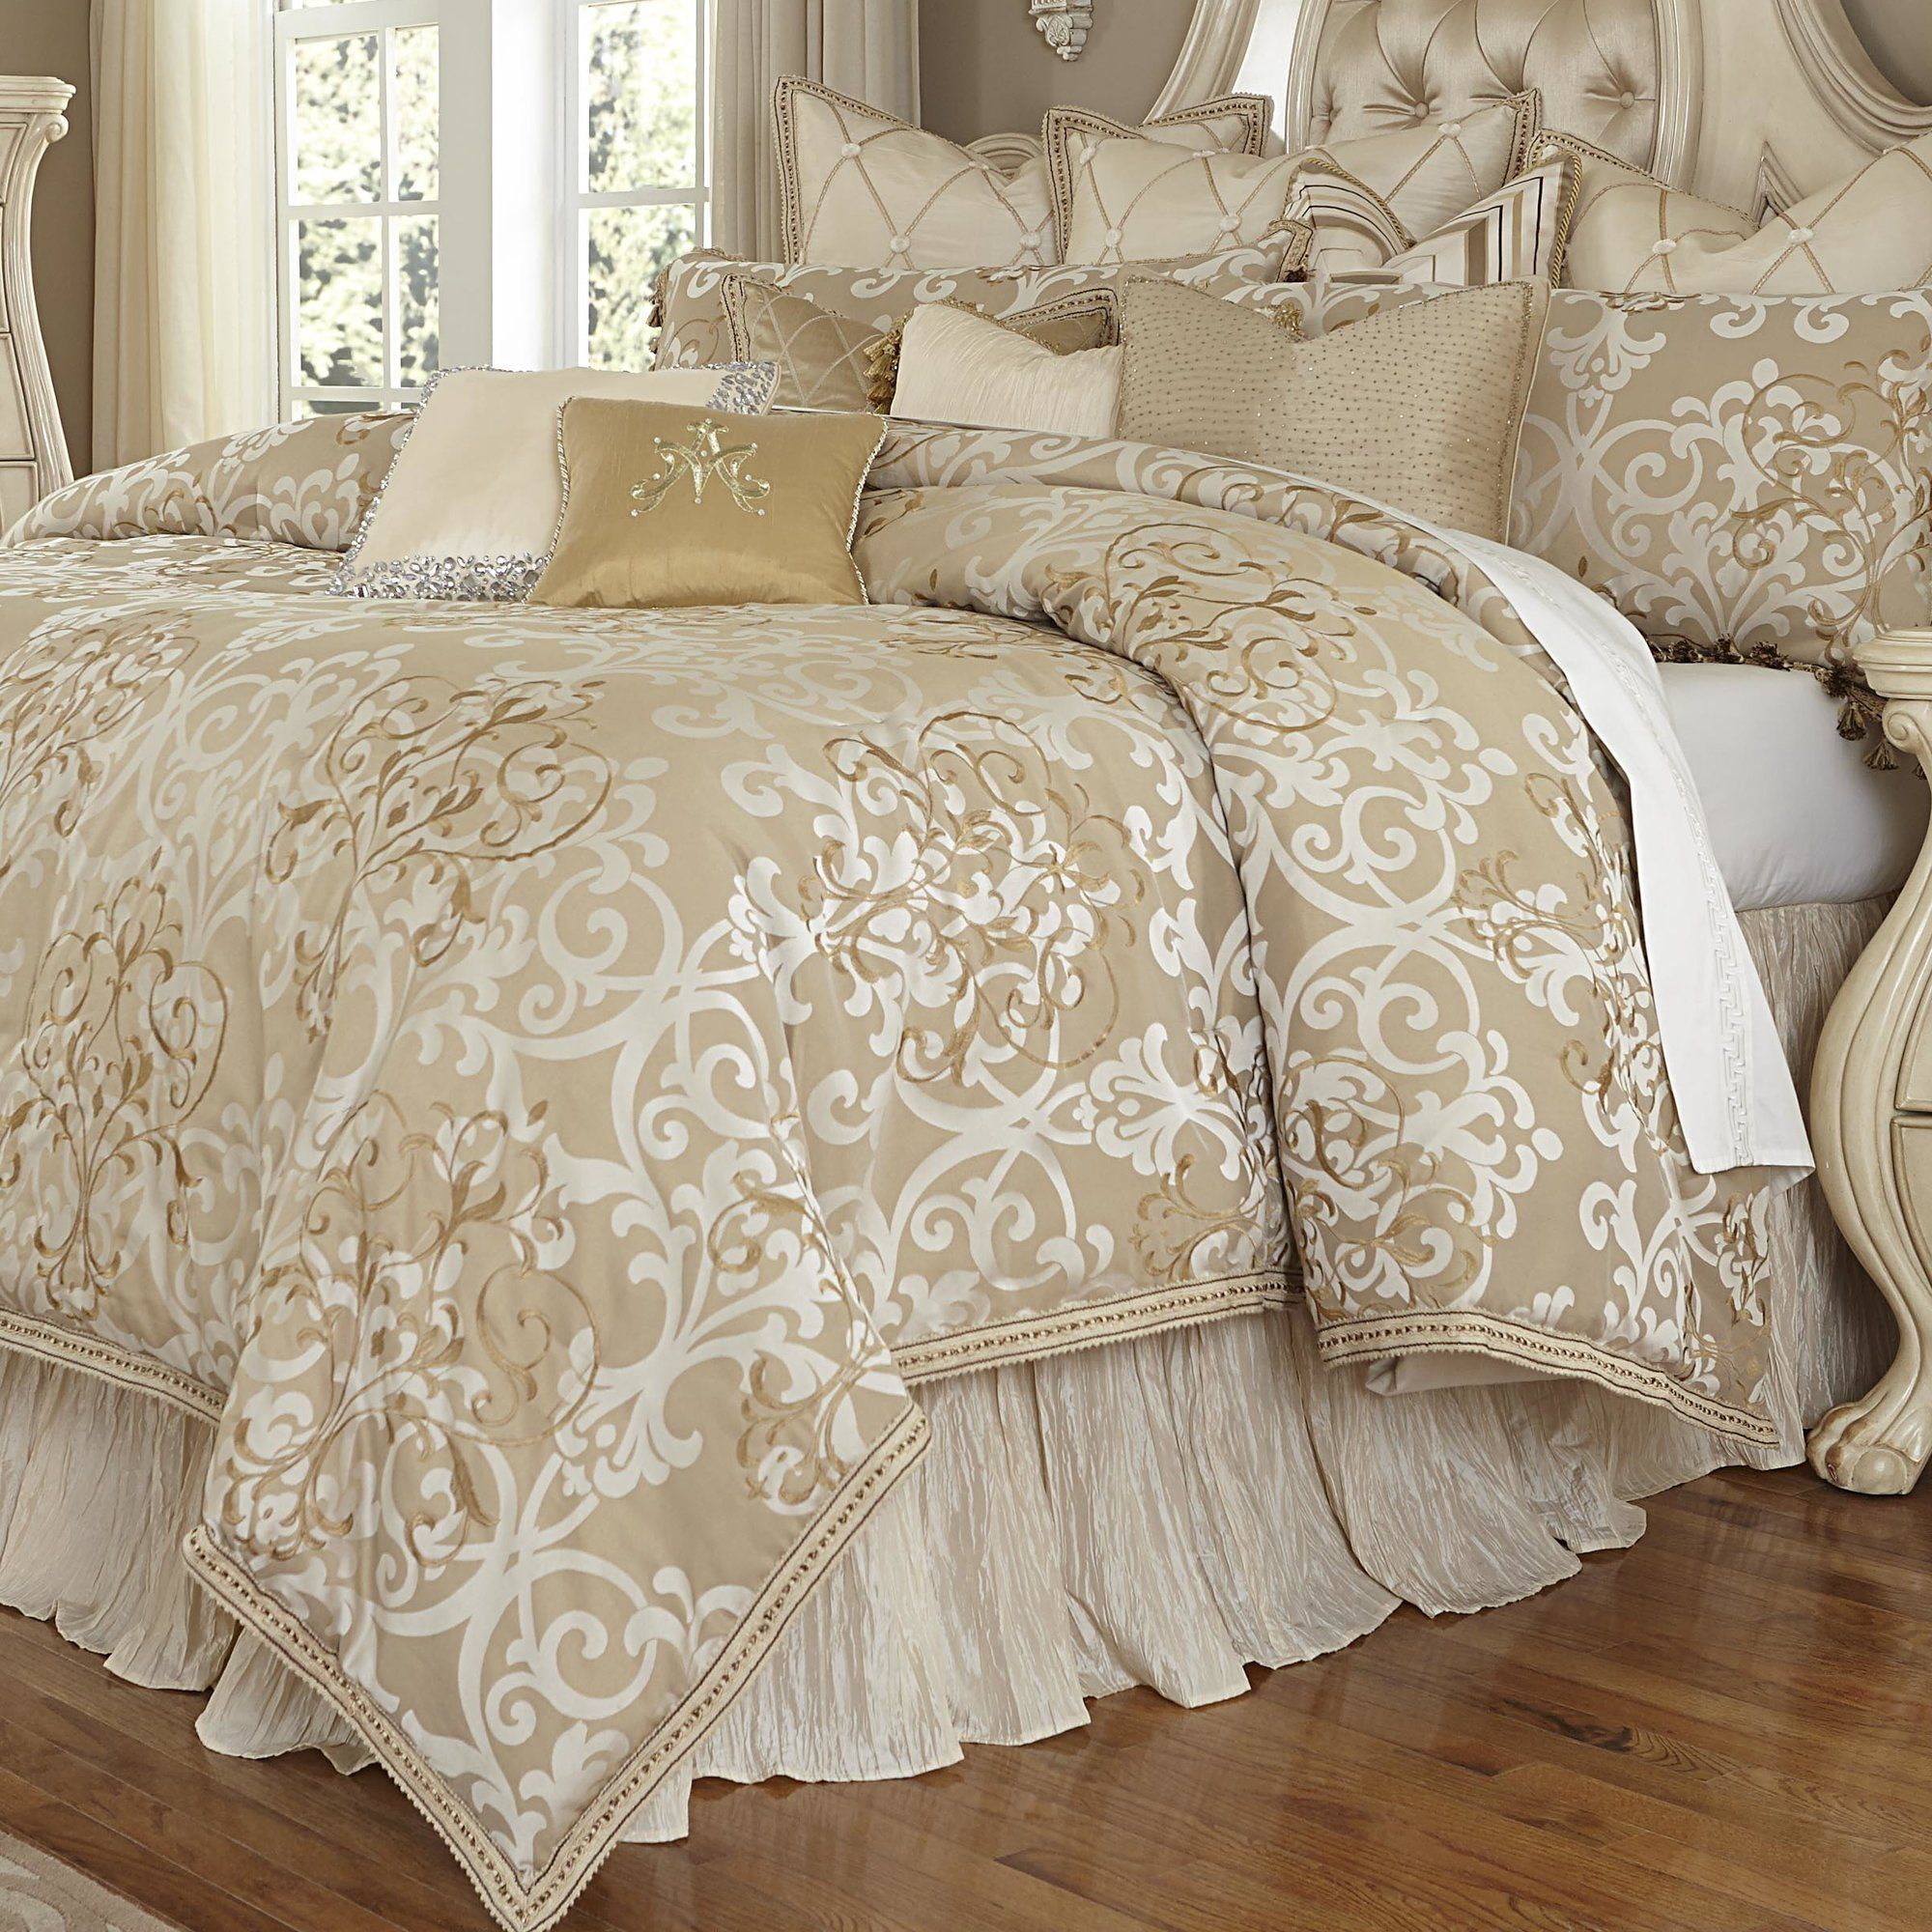 Luxembourg Creme Polyester Blend Traditional Comforter Set In 2021 Luxury Comforter Sets Luxury Bedding Sets Luxury Bedding